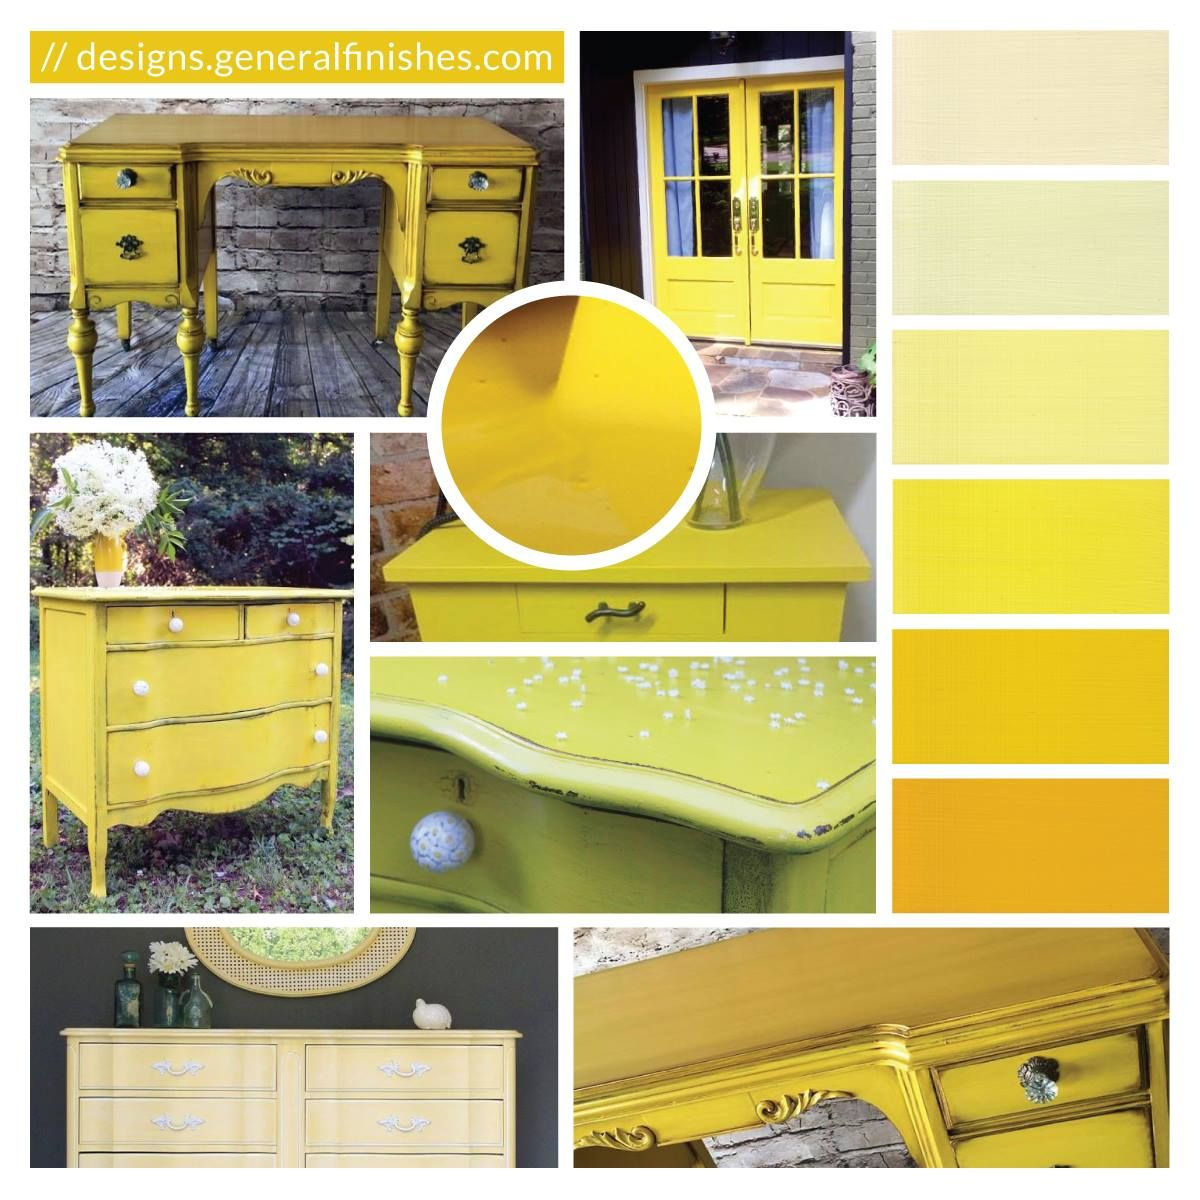 Sunglow Milk Paint Style Inspiration is part of Yellow Home Accessories Paint - Paint your home accessories with daylight using General Finishes Sunglow Milk Paint! Sunglow is a fresh yellow color that sets the tone for relaxation and is sure to perk up your mood  All designs featured in this image belong to their respective owners at Ginger WatkinsJunque With A PurposeLeiloutaThe ReStore Midleton